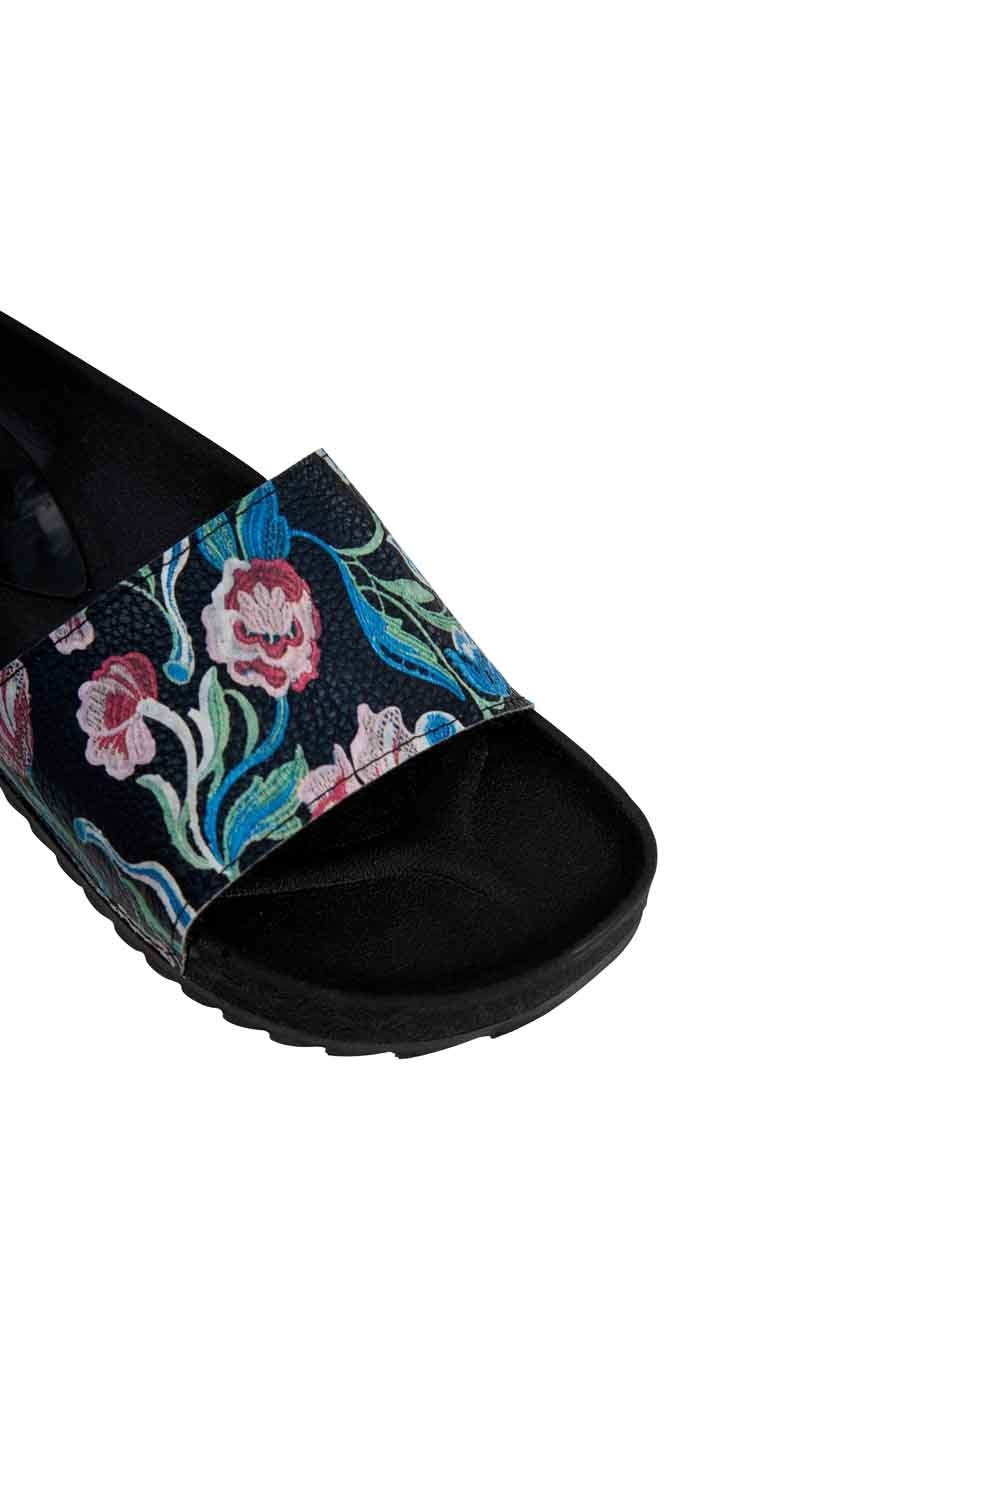 MIZALLE Printed Soft Sole Slippers (Black/White) (1)